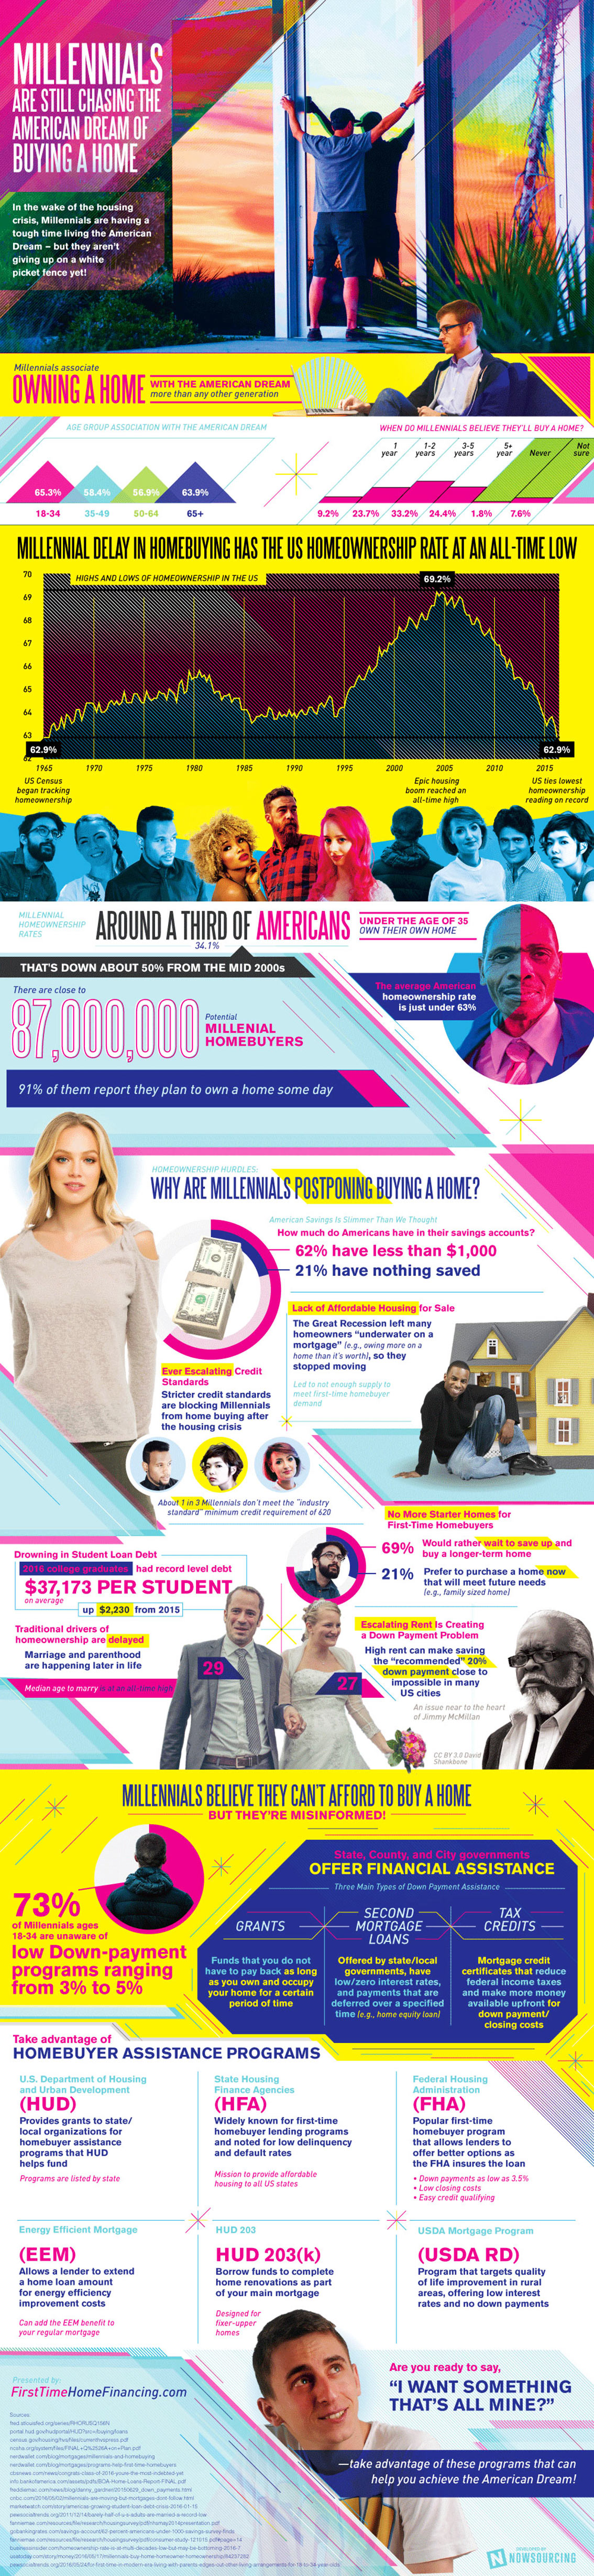 Millennials Postponing Buying a Home - Real Estate Infographic